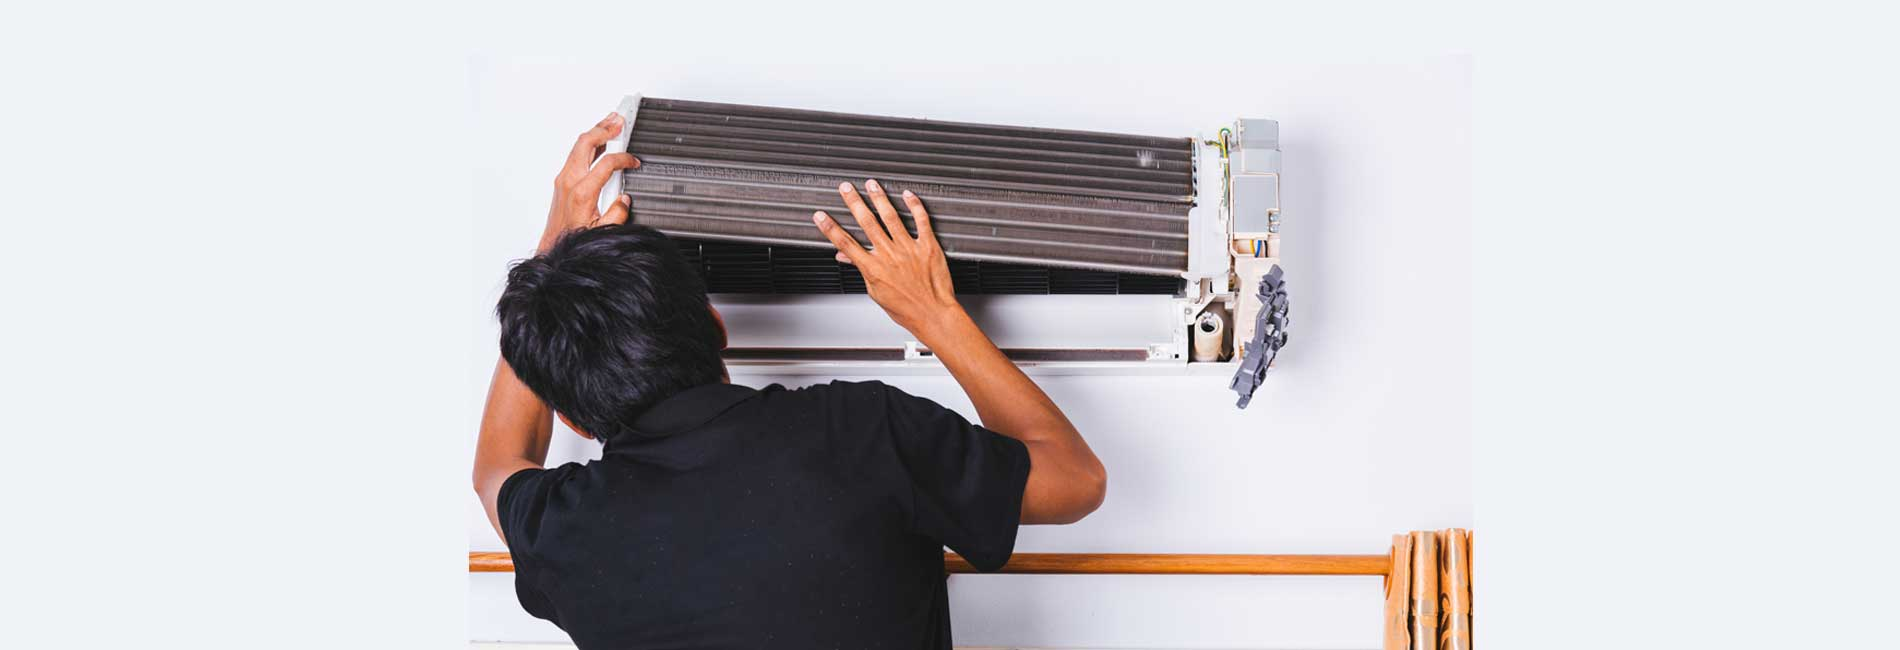 Split AC Uninstallation in Ayanavaram